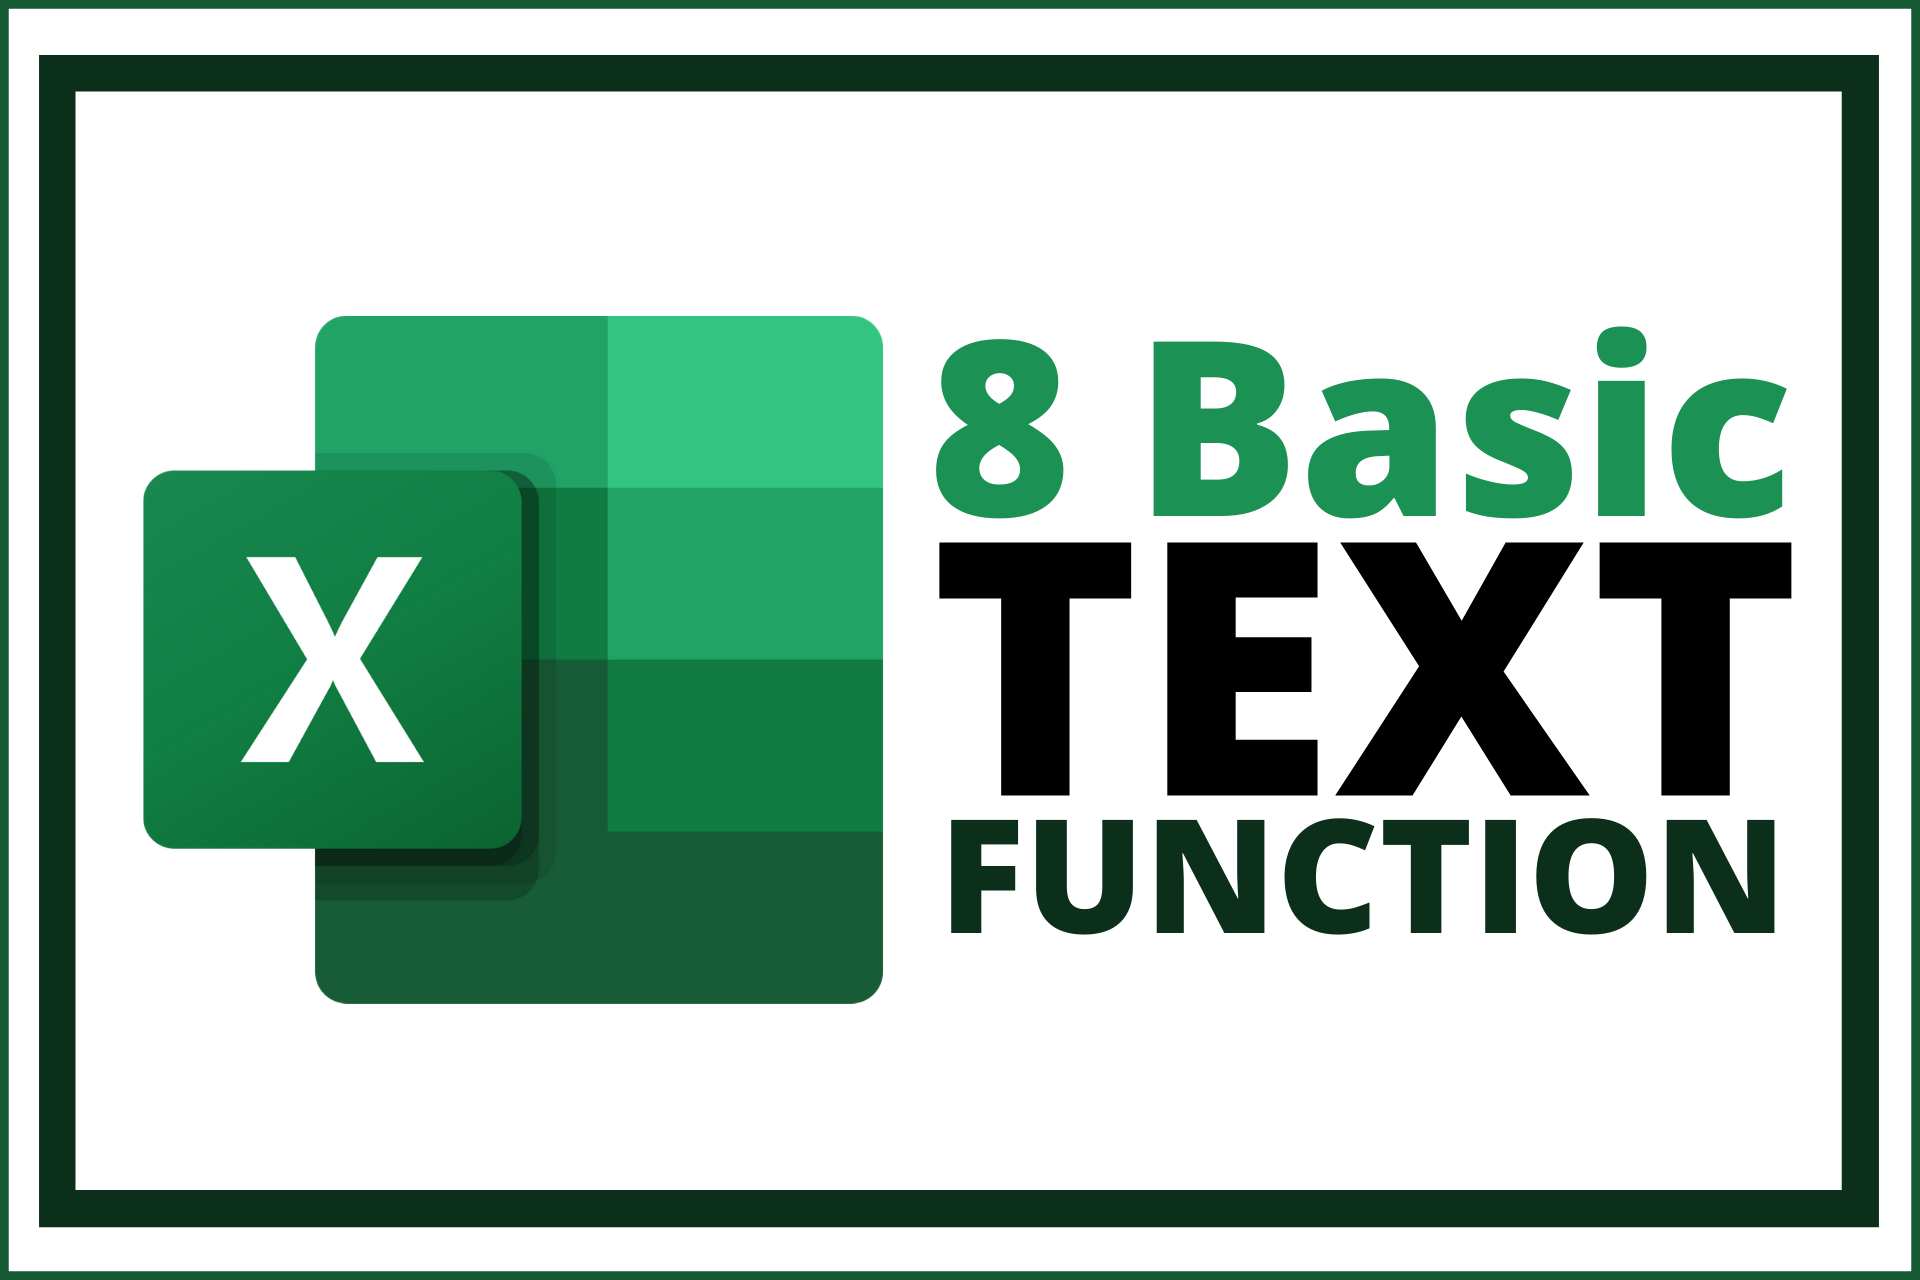 How to use Text function in Hindi